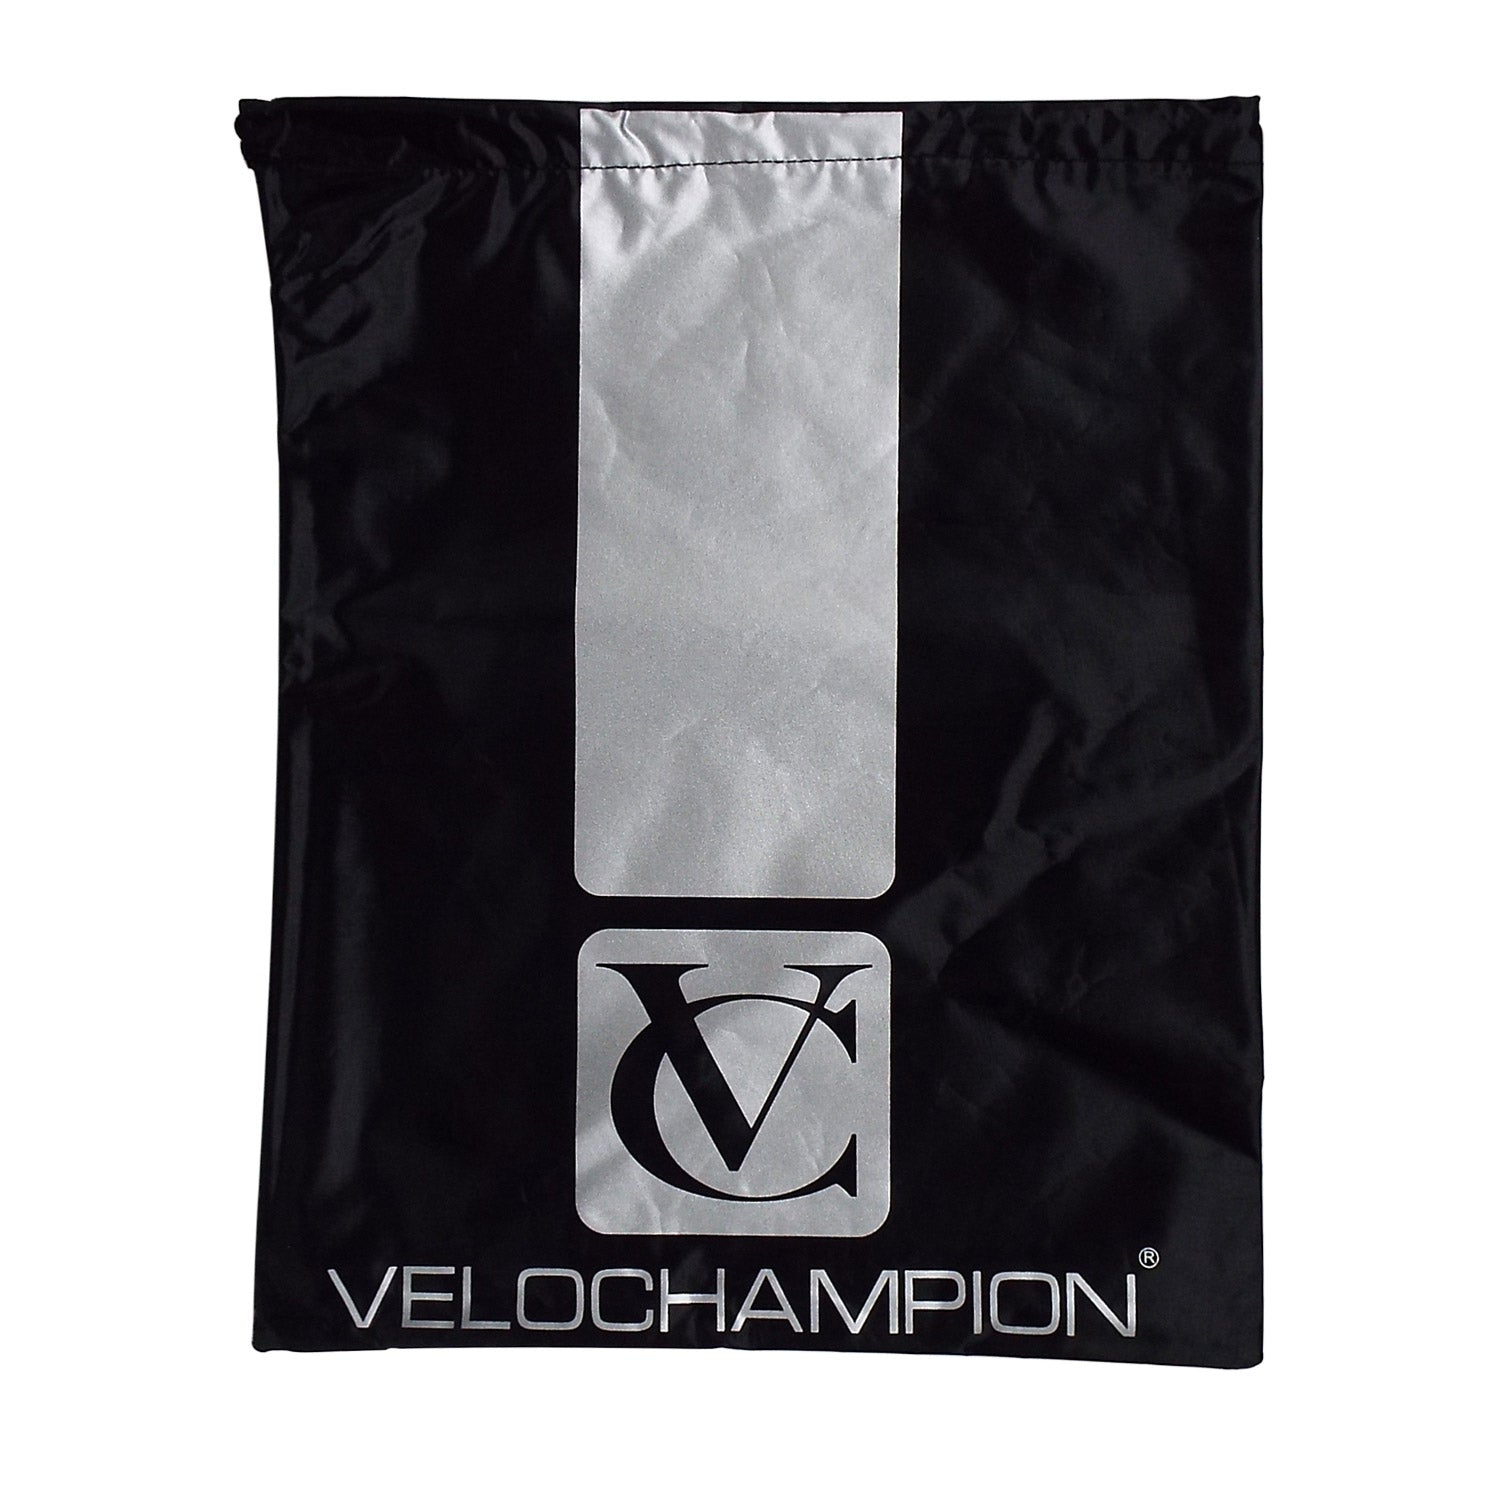 Velochampion Soft Shoe/Gym Drawstring Bag - Velochampion